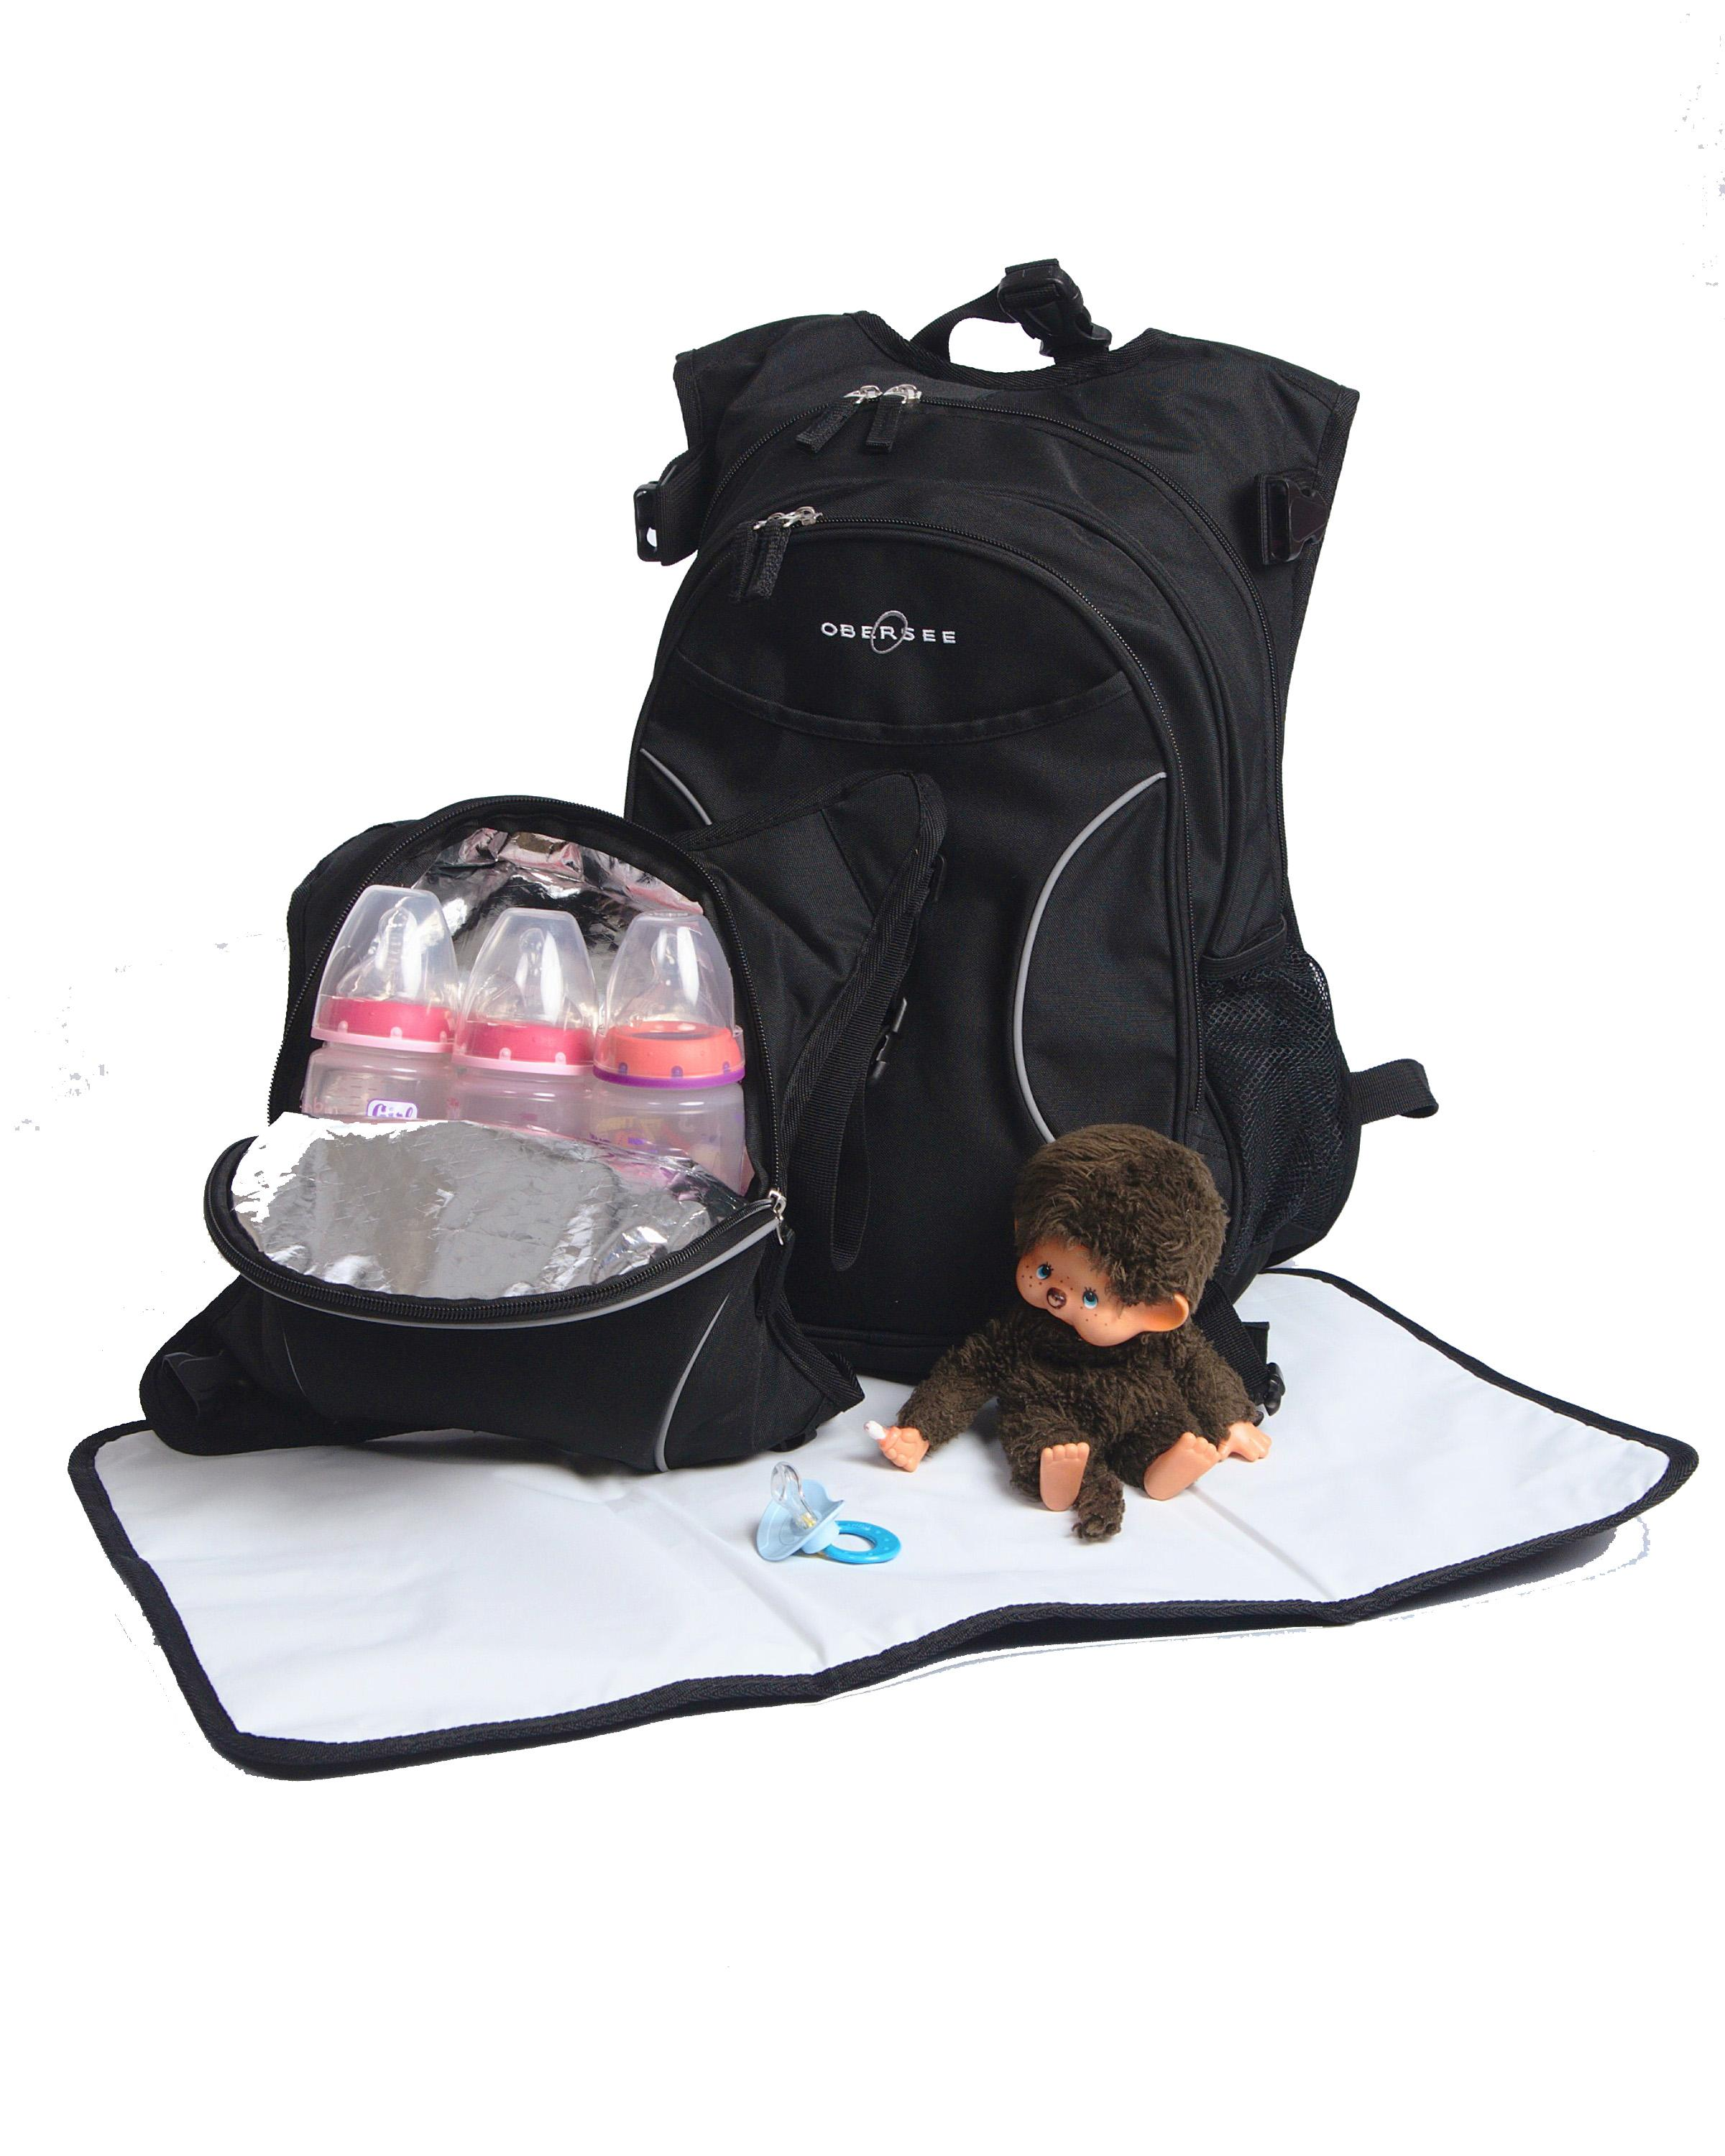 Amazon.com : Obersee Innsbruck Diaper Bag Backpack with Detachable ...